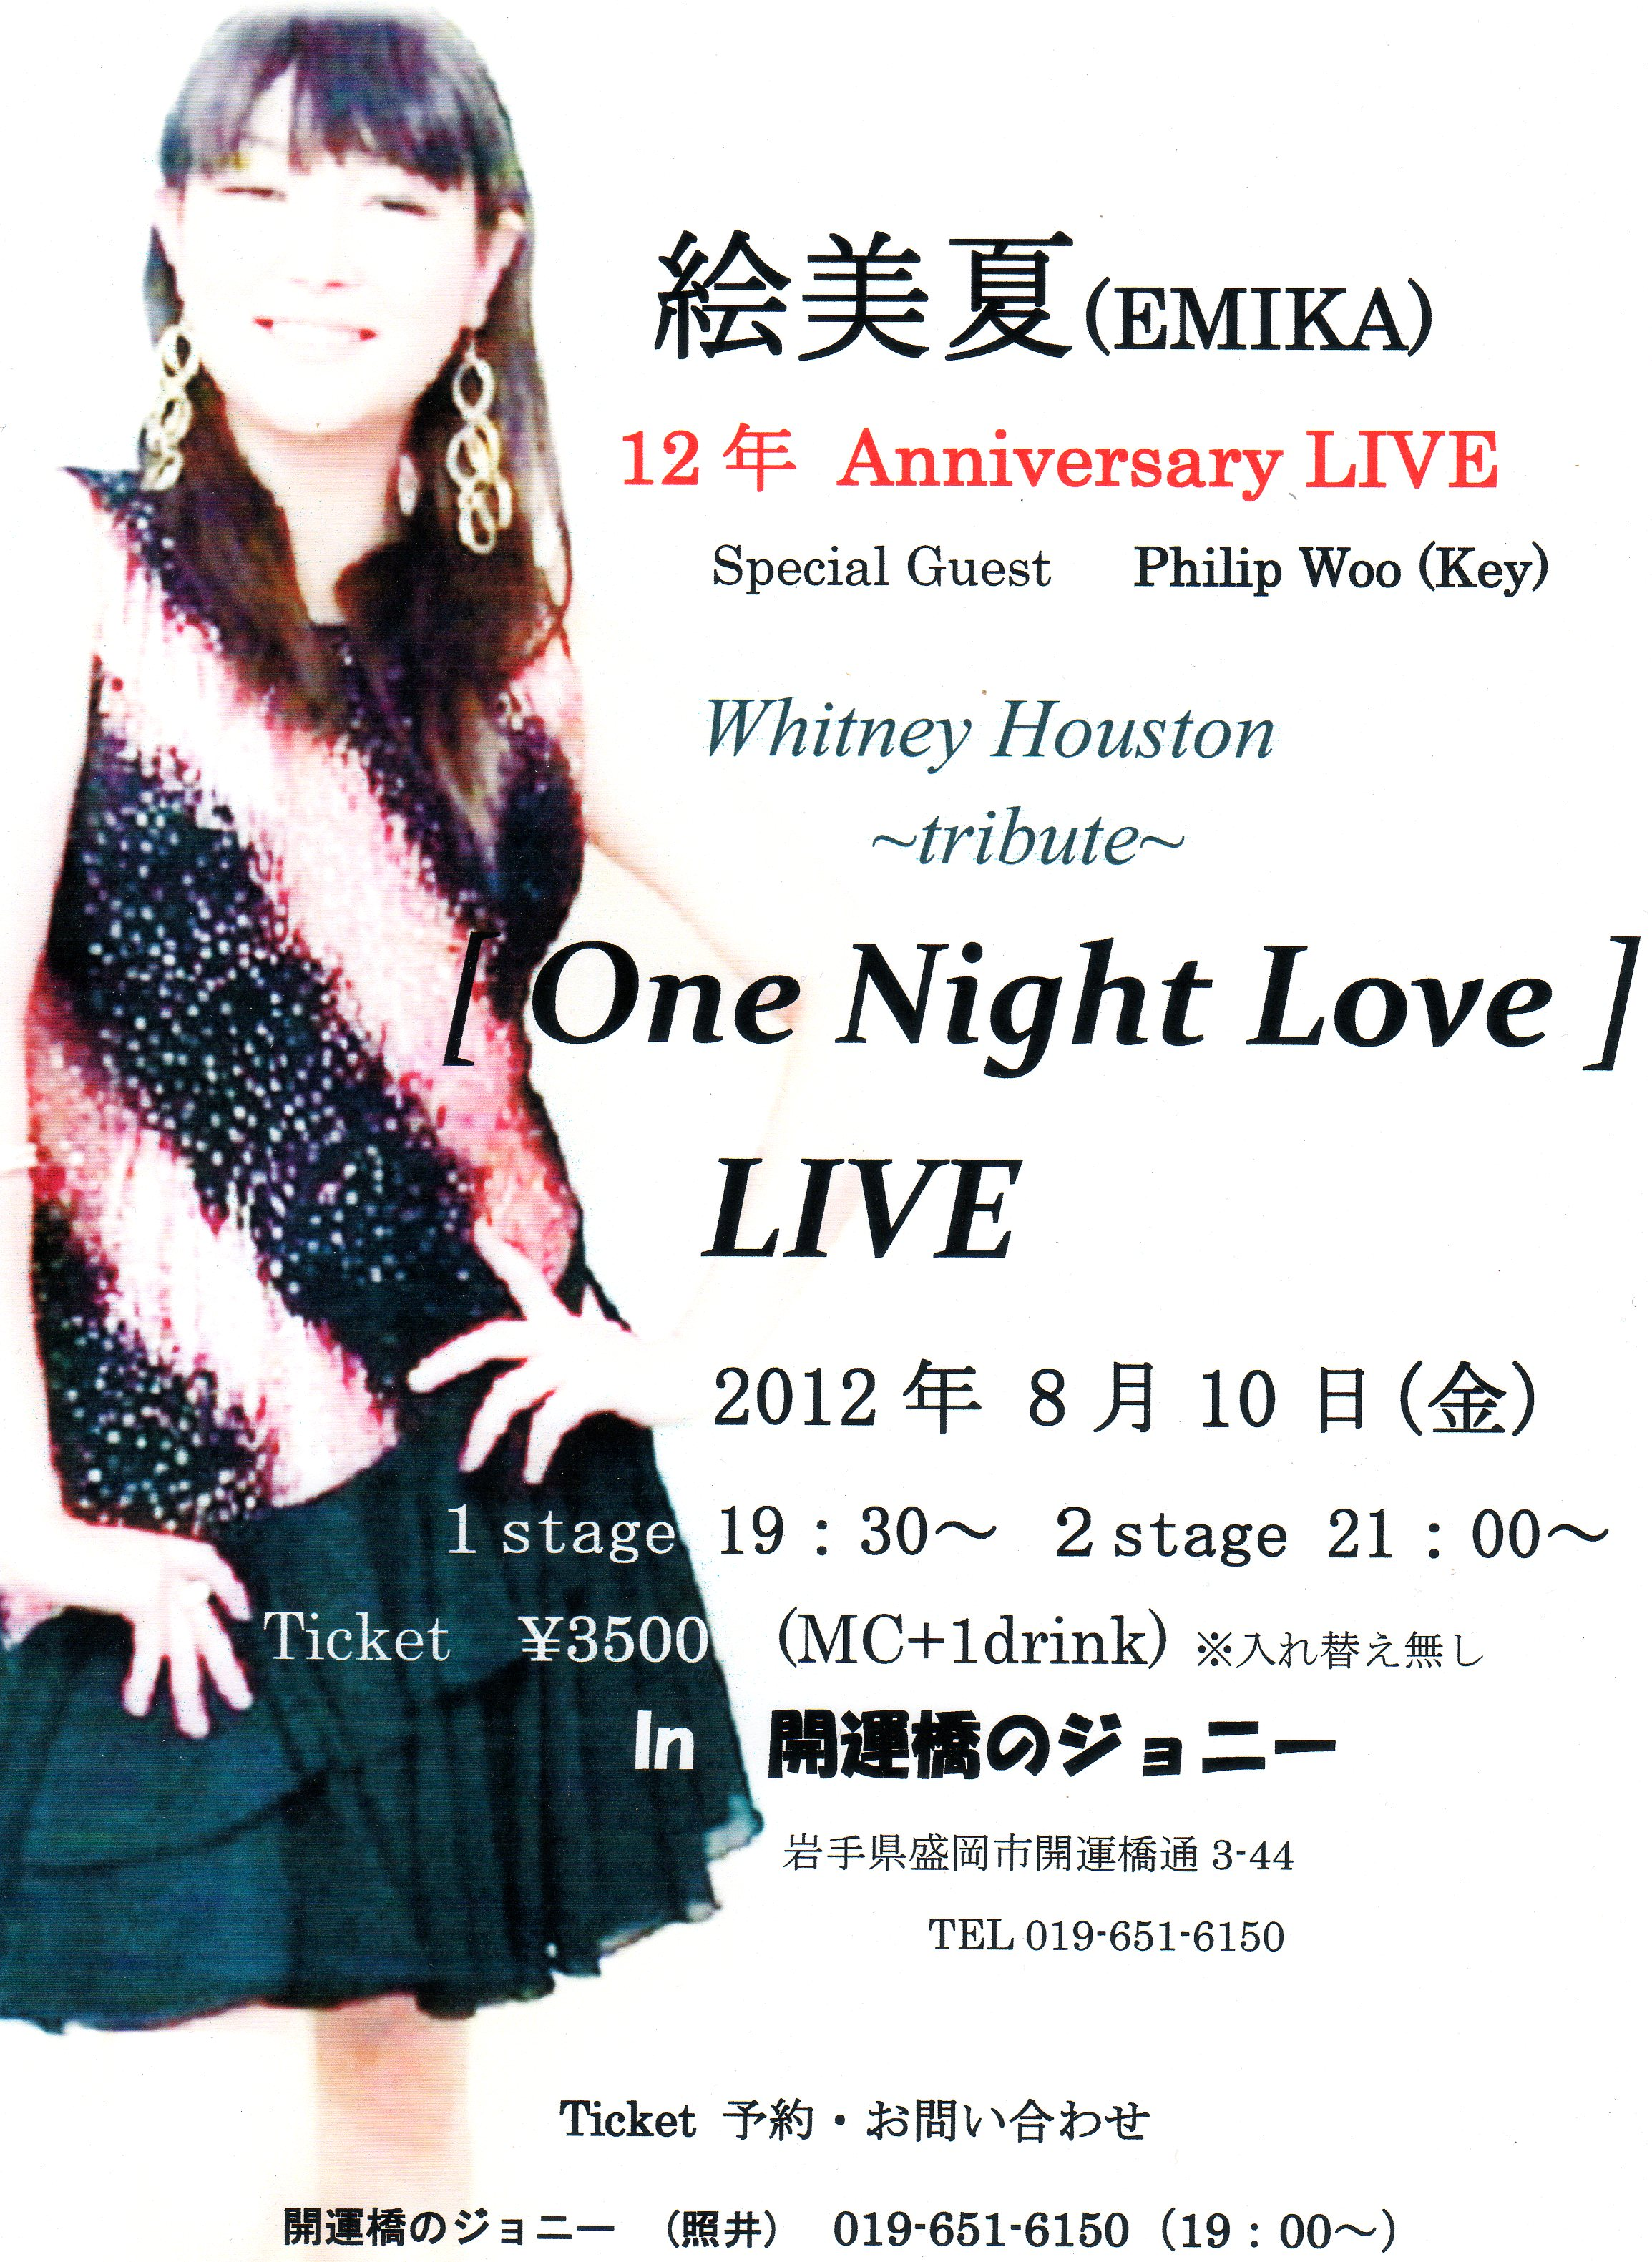 [ One Night Love ] LIVE  Whitney Houston~tribute~